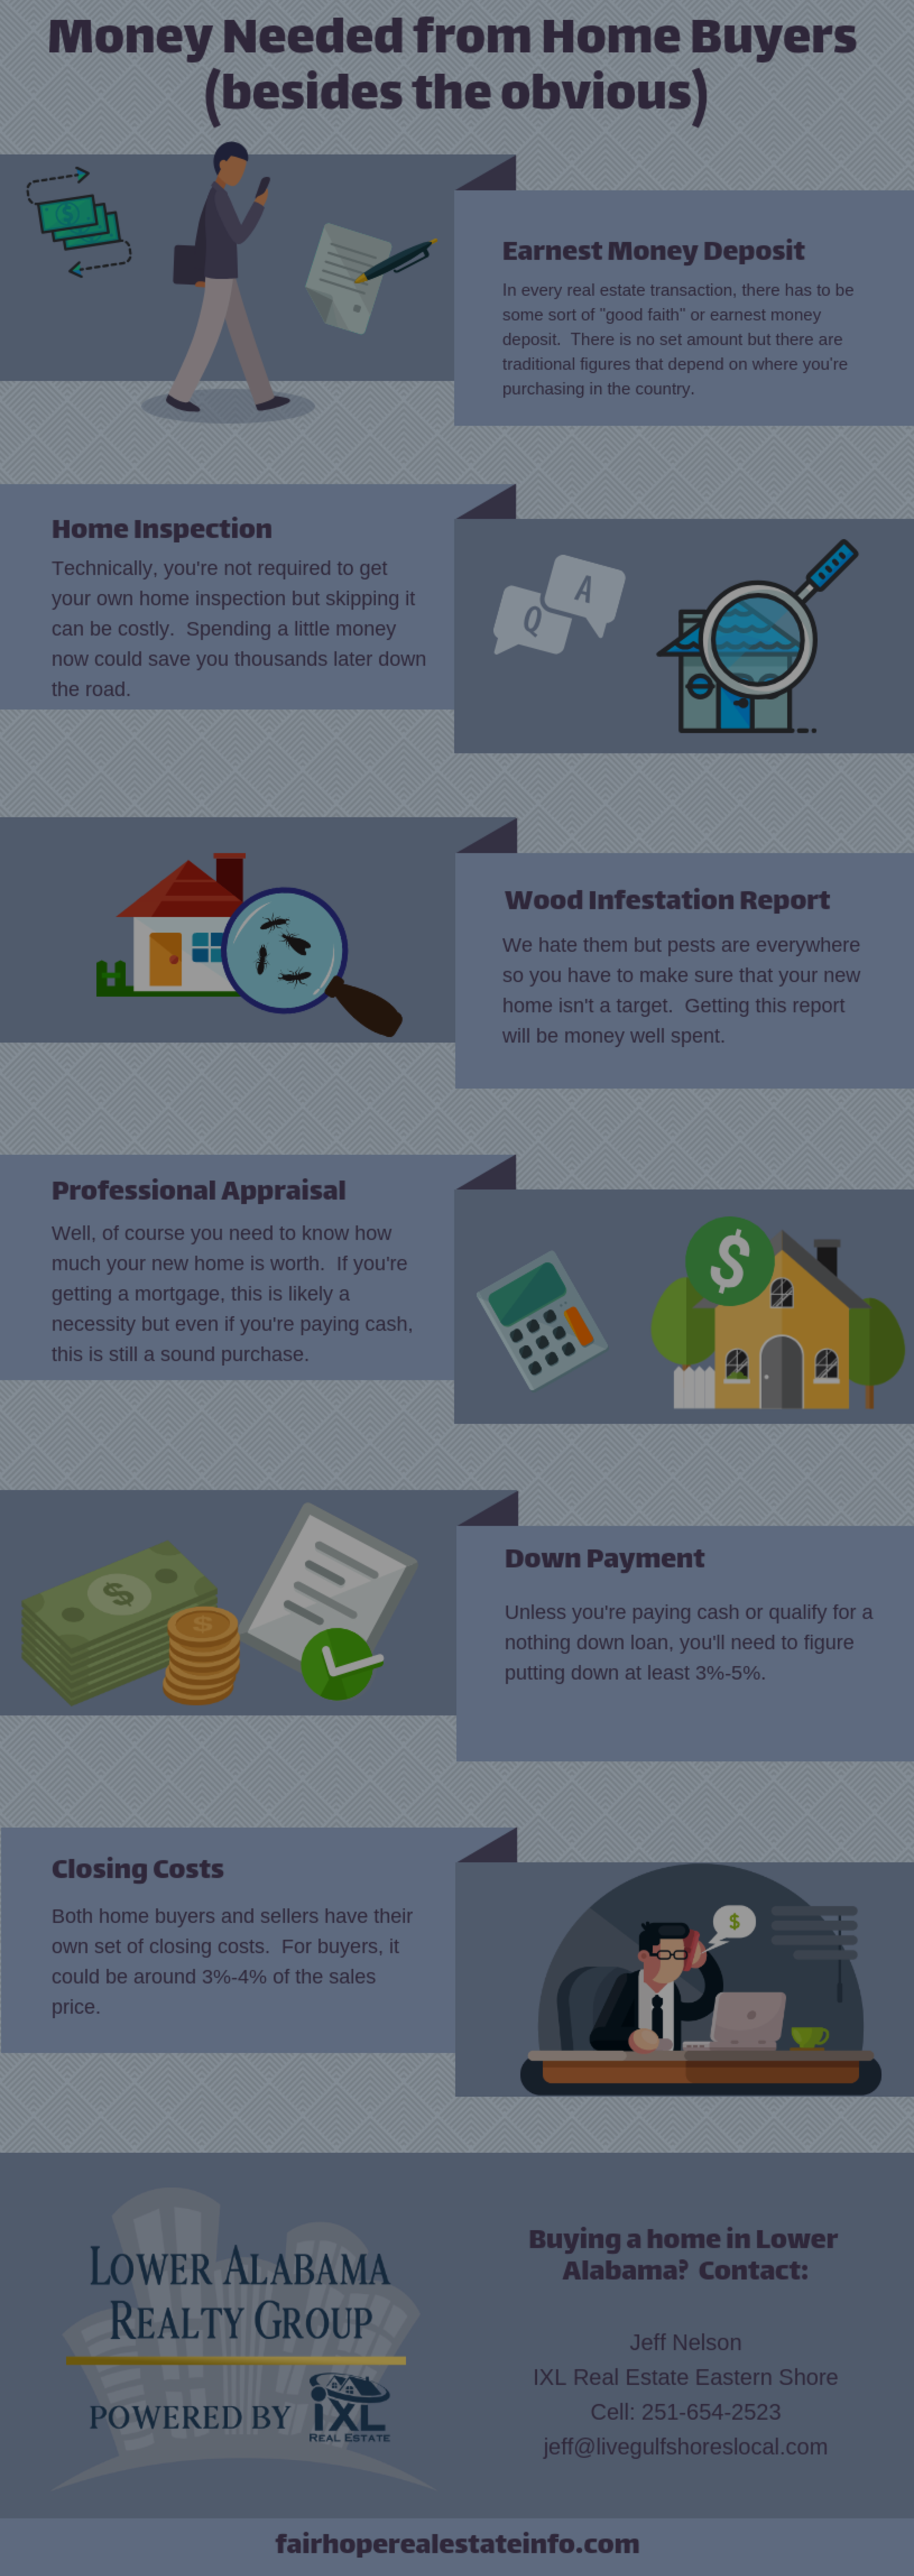 Money Needed From Home Buyers